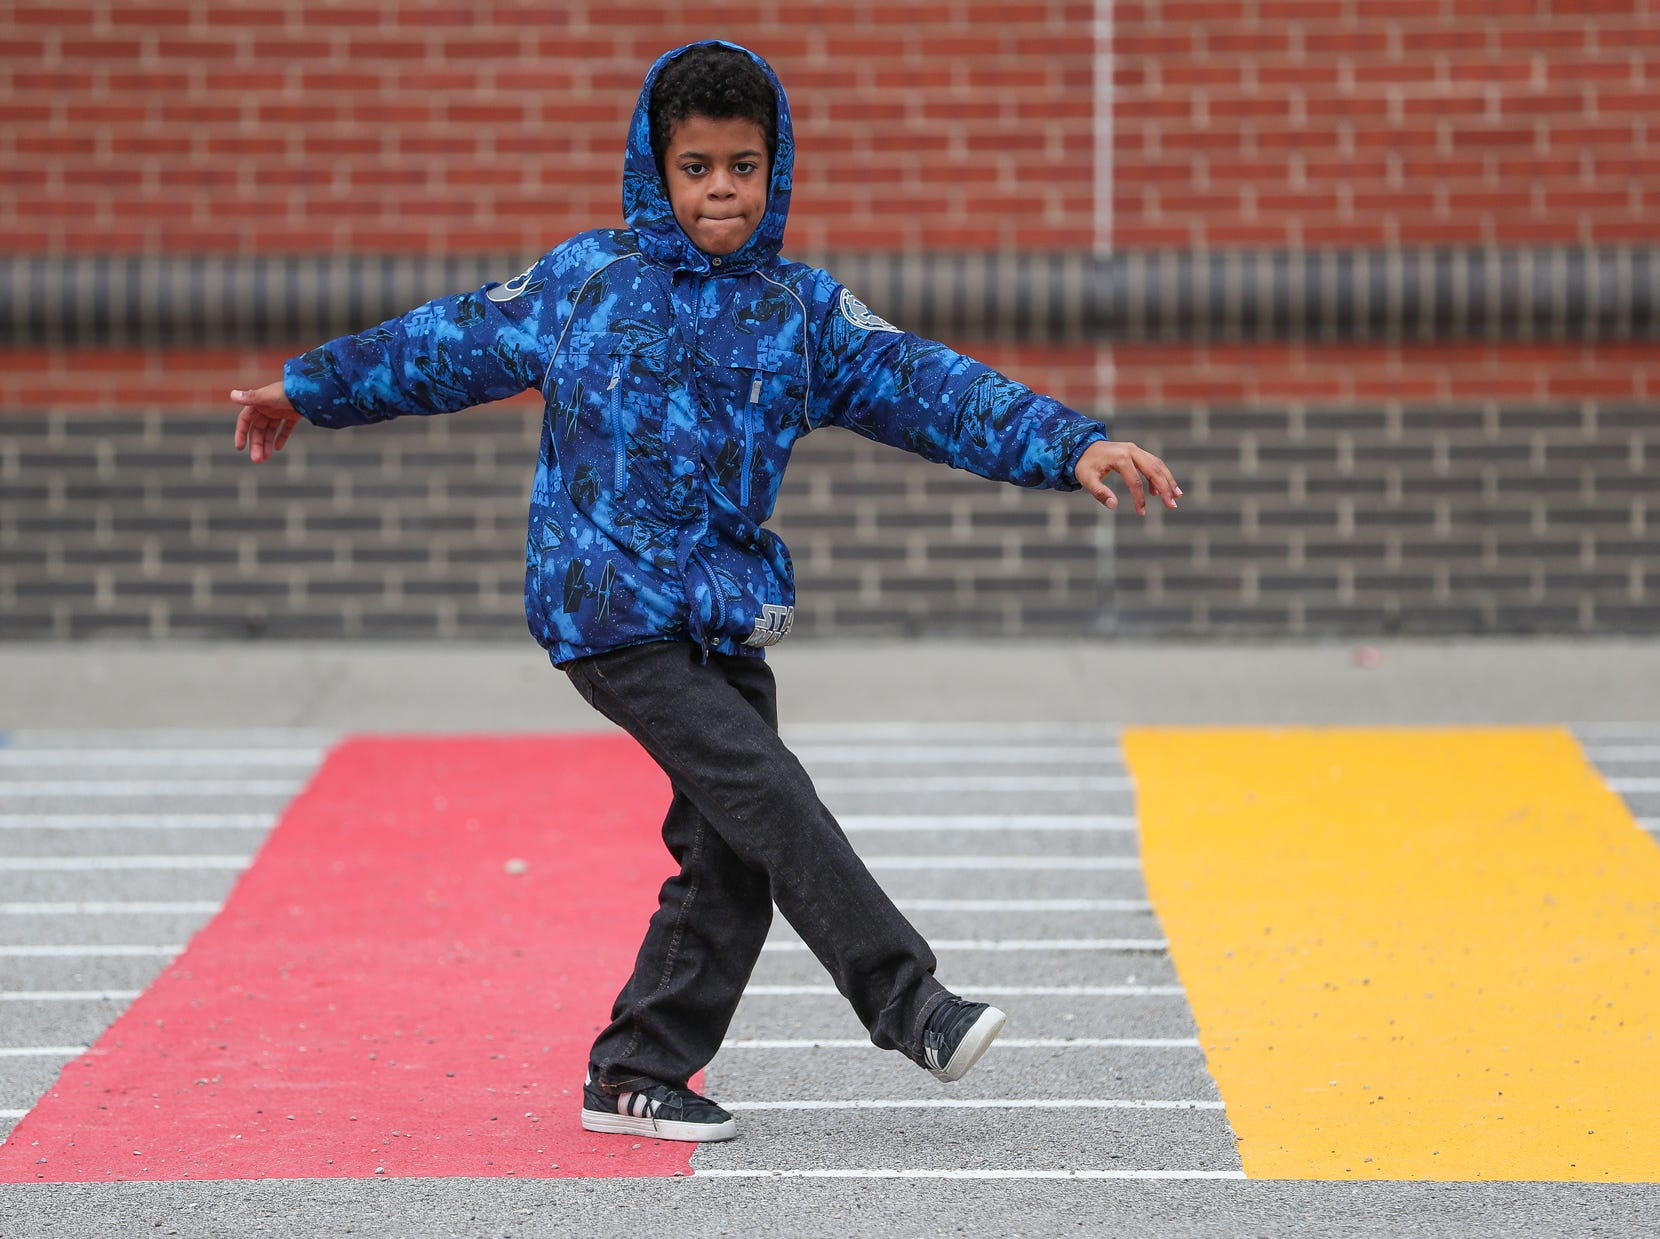 Ethan Price, 9, dances during recess at Sunny Heights Elementary School on Friday, Nov. 16, 2018. Instead of allowing kids to stand around, the school brings in Jump IN for Healthy Kids and their partner, Playworks, to keep kids active.